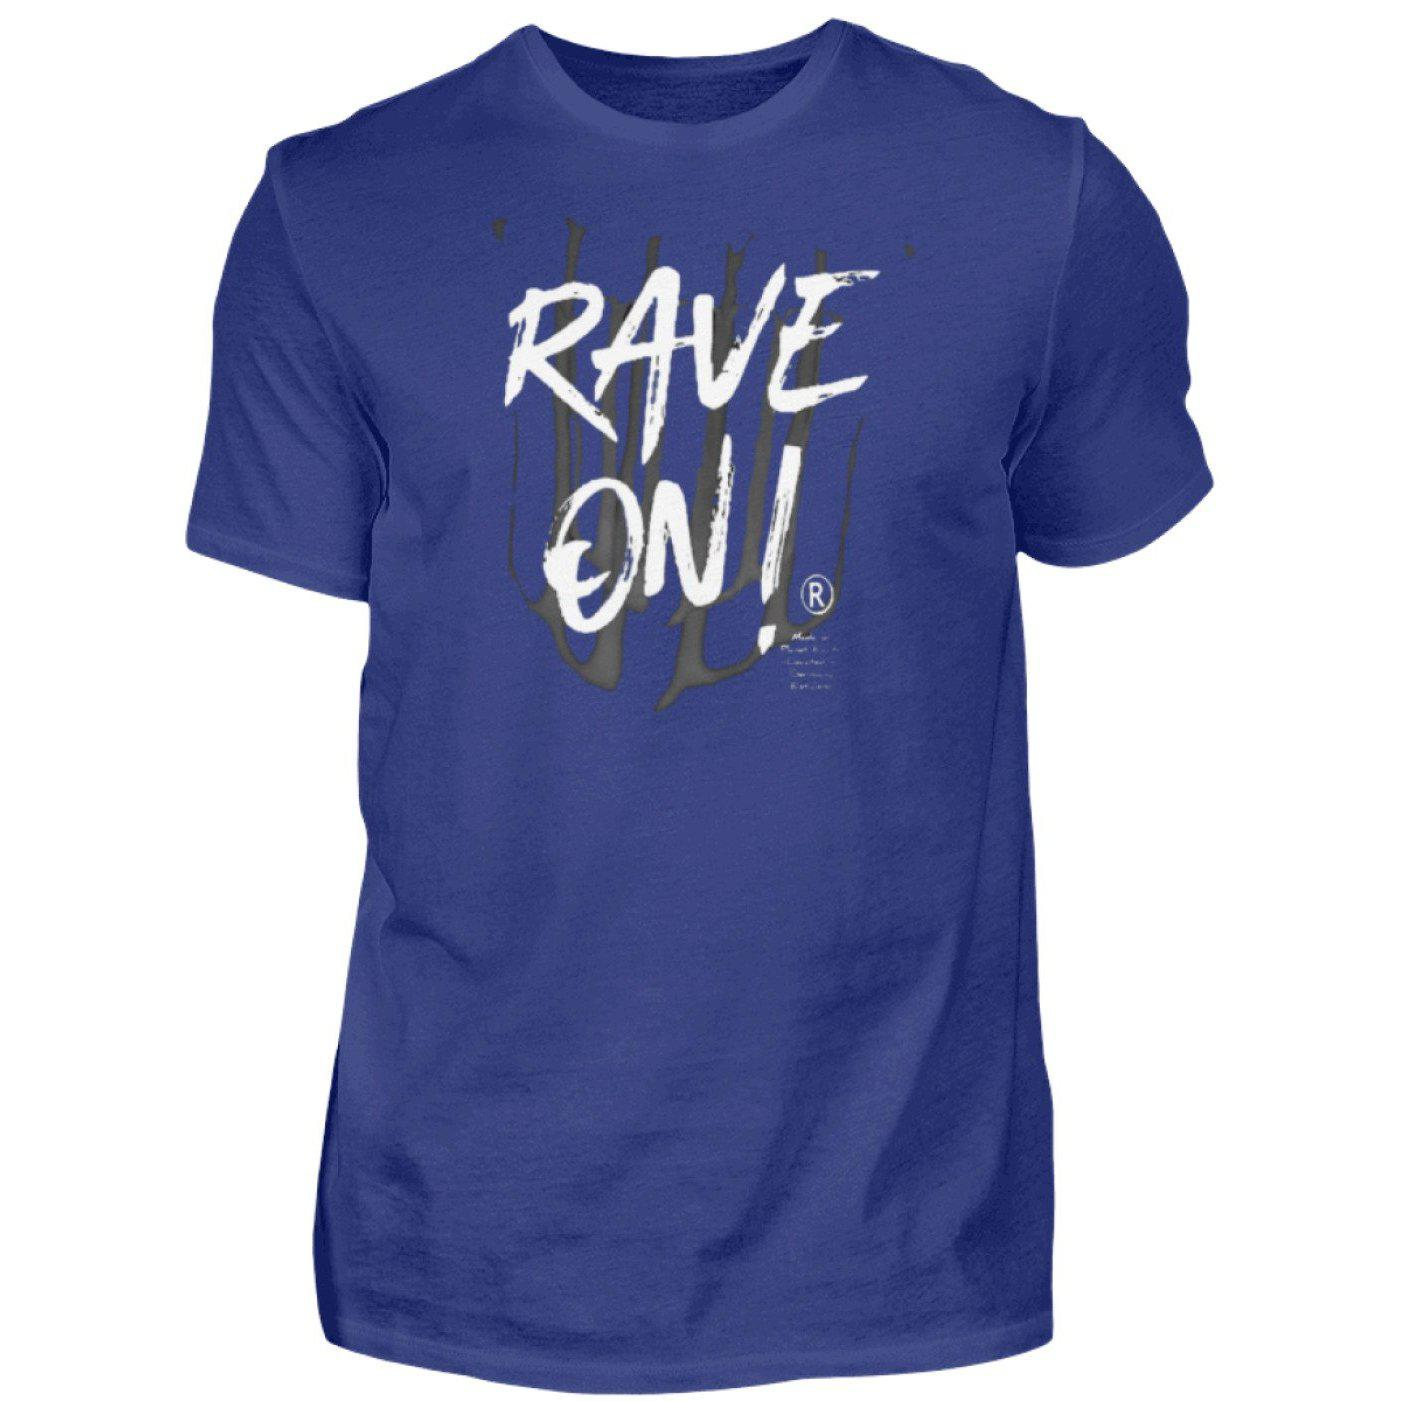 Rave On!® - Made On Planet Earth B2k20 - Herren Premiumshirt Herren Premium Shirt Dark Royal / S - Rave On!® der Club & Techno Szene Shop für Coole Junge Mode Streetwear Style & Fashion Outfits + Sexy Festival 420 Stuff